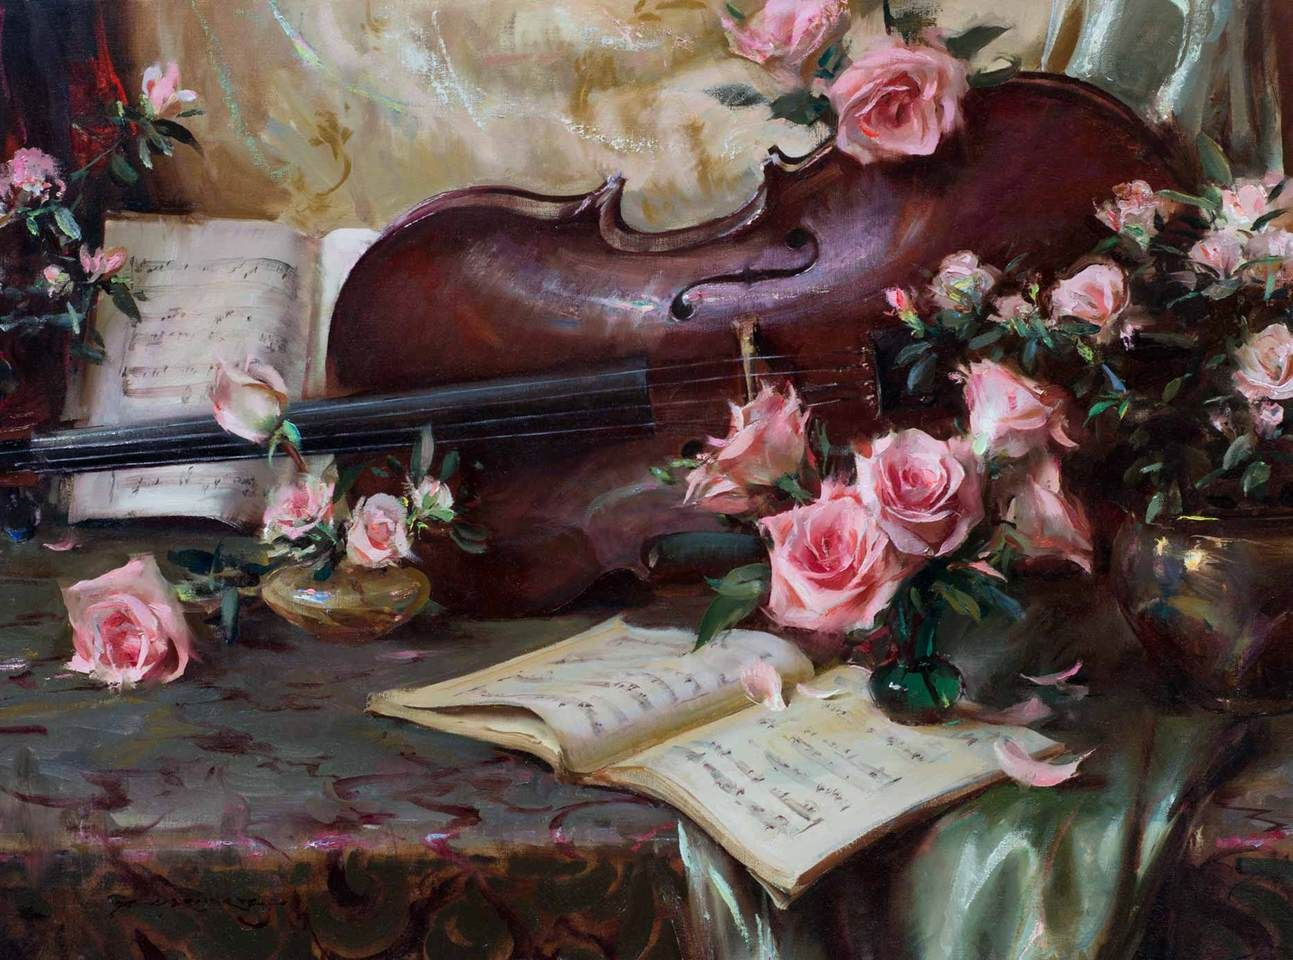 Dan gerhartz is known for his romantic painterly still lives often dan gerhartz is known for his romantic painterly still lives often featuring beautiful flowers izmirmasajfo Image collections